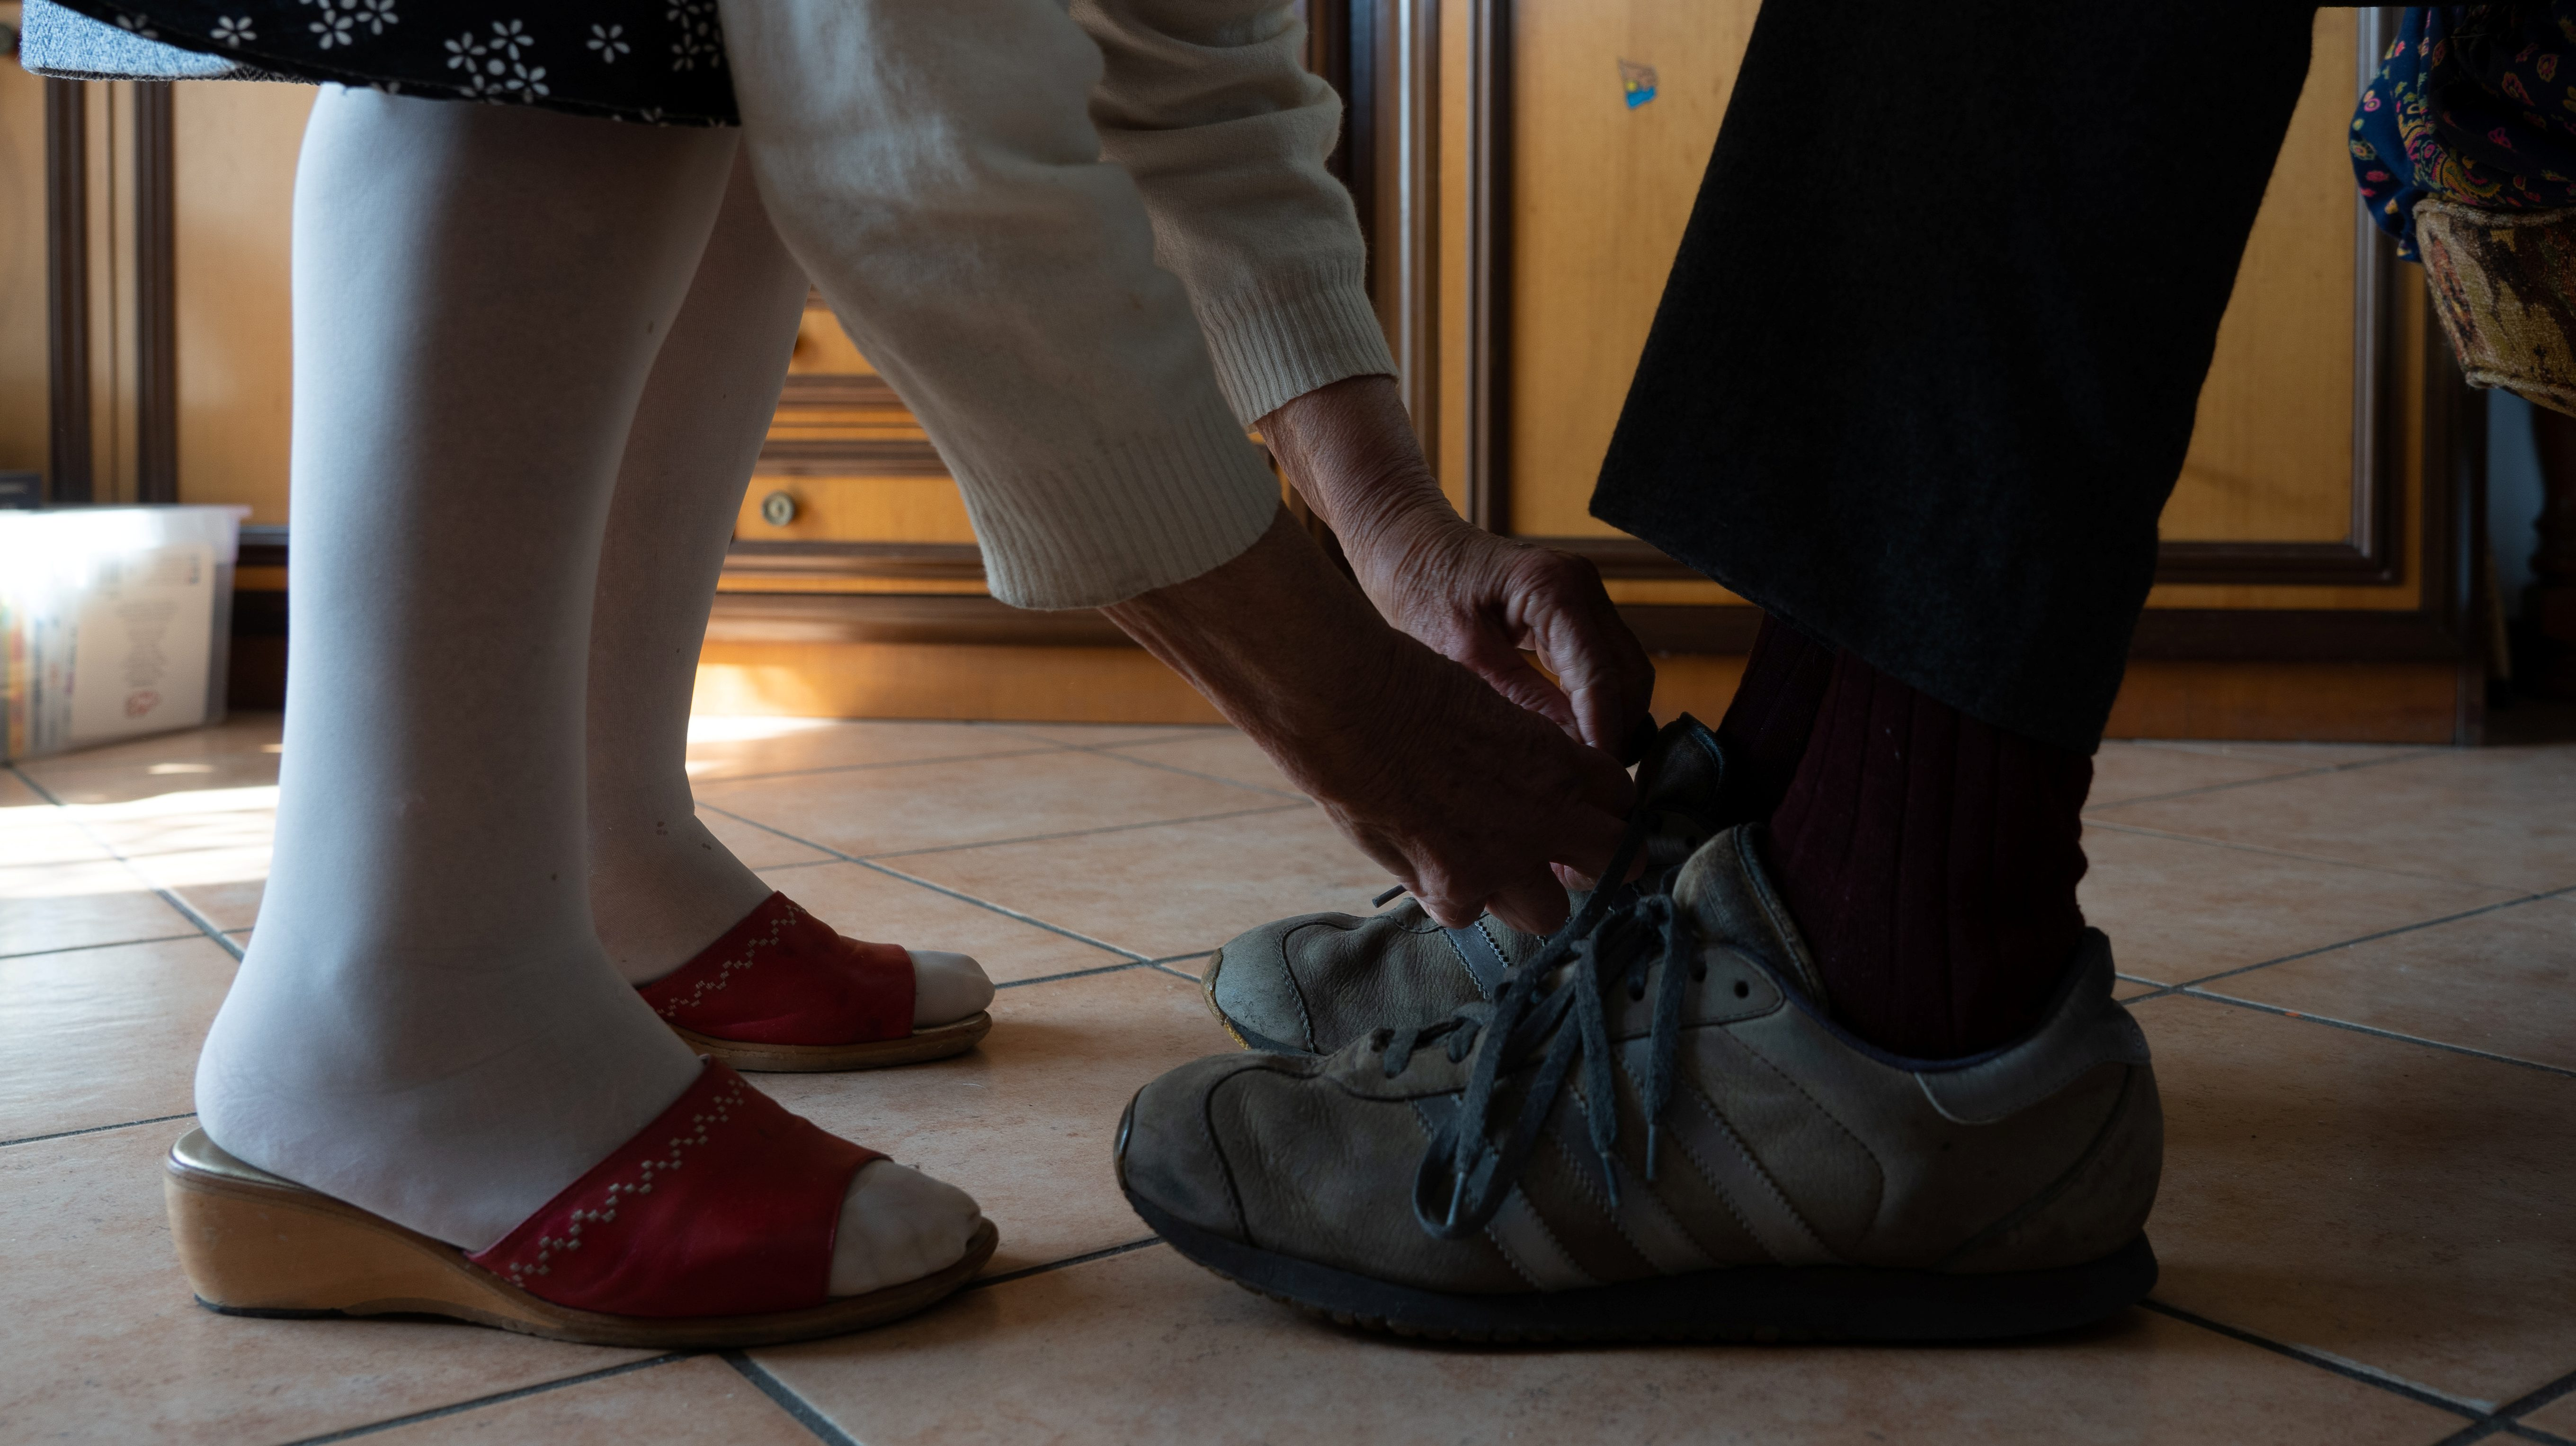 A person in stockings is tying the shoes of a person wearing sneakers.